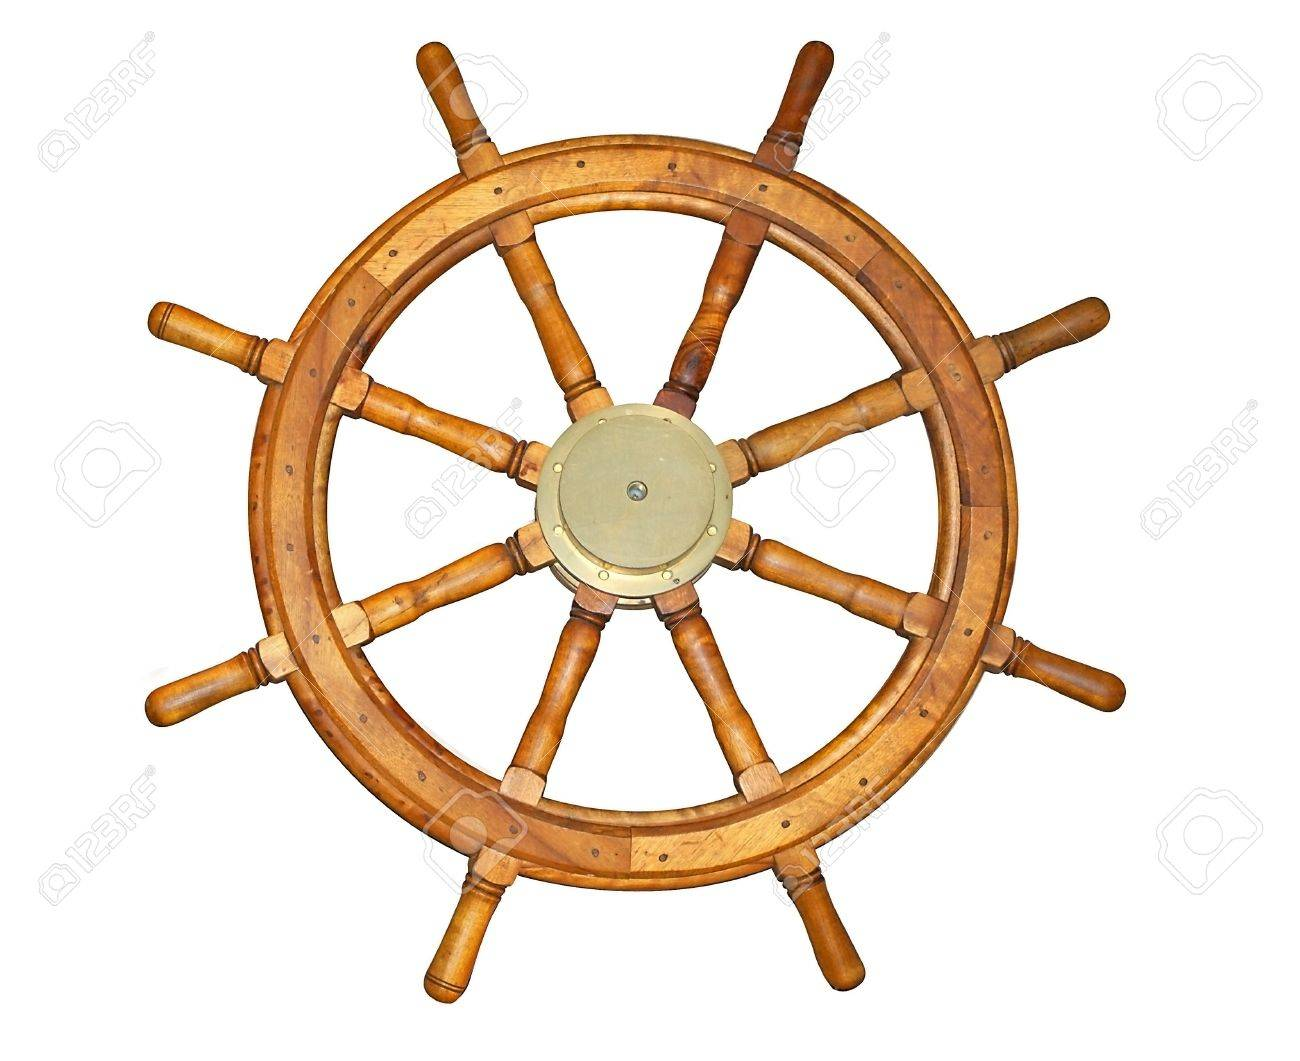 Old style ship wheel isolated on white. Includes clipping path. Stock Photo - 10775822